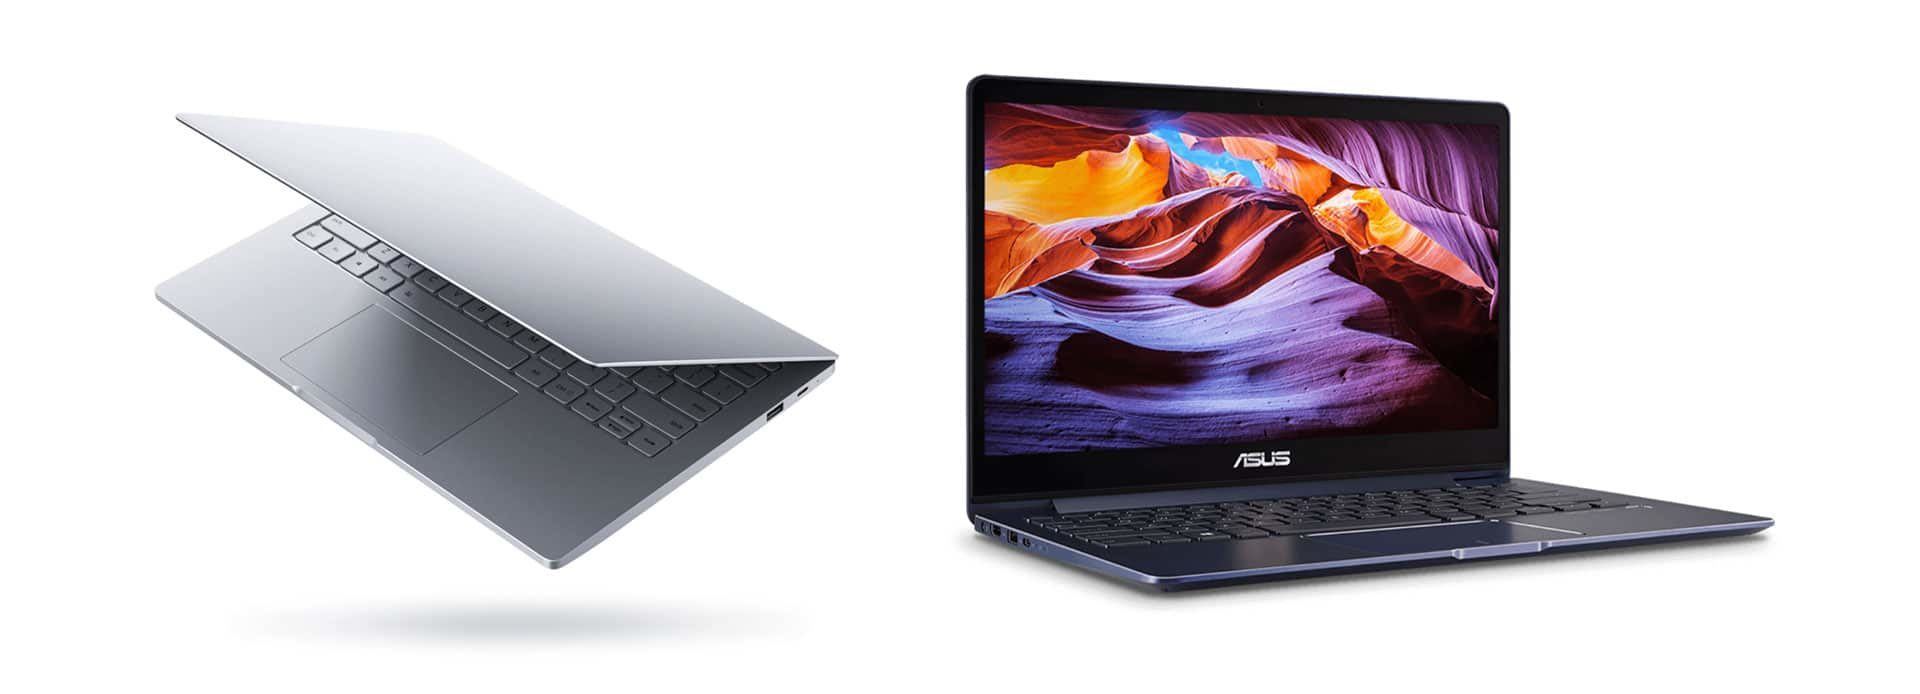 Some of the ultraportable gaming laptops available these days: Ziaomi Notebook Air (left) and Asus Zenbook UX331 (right)